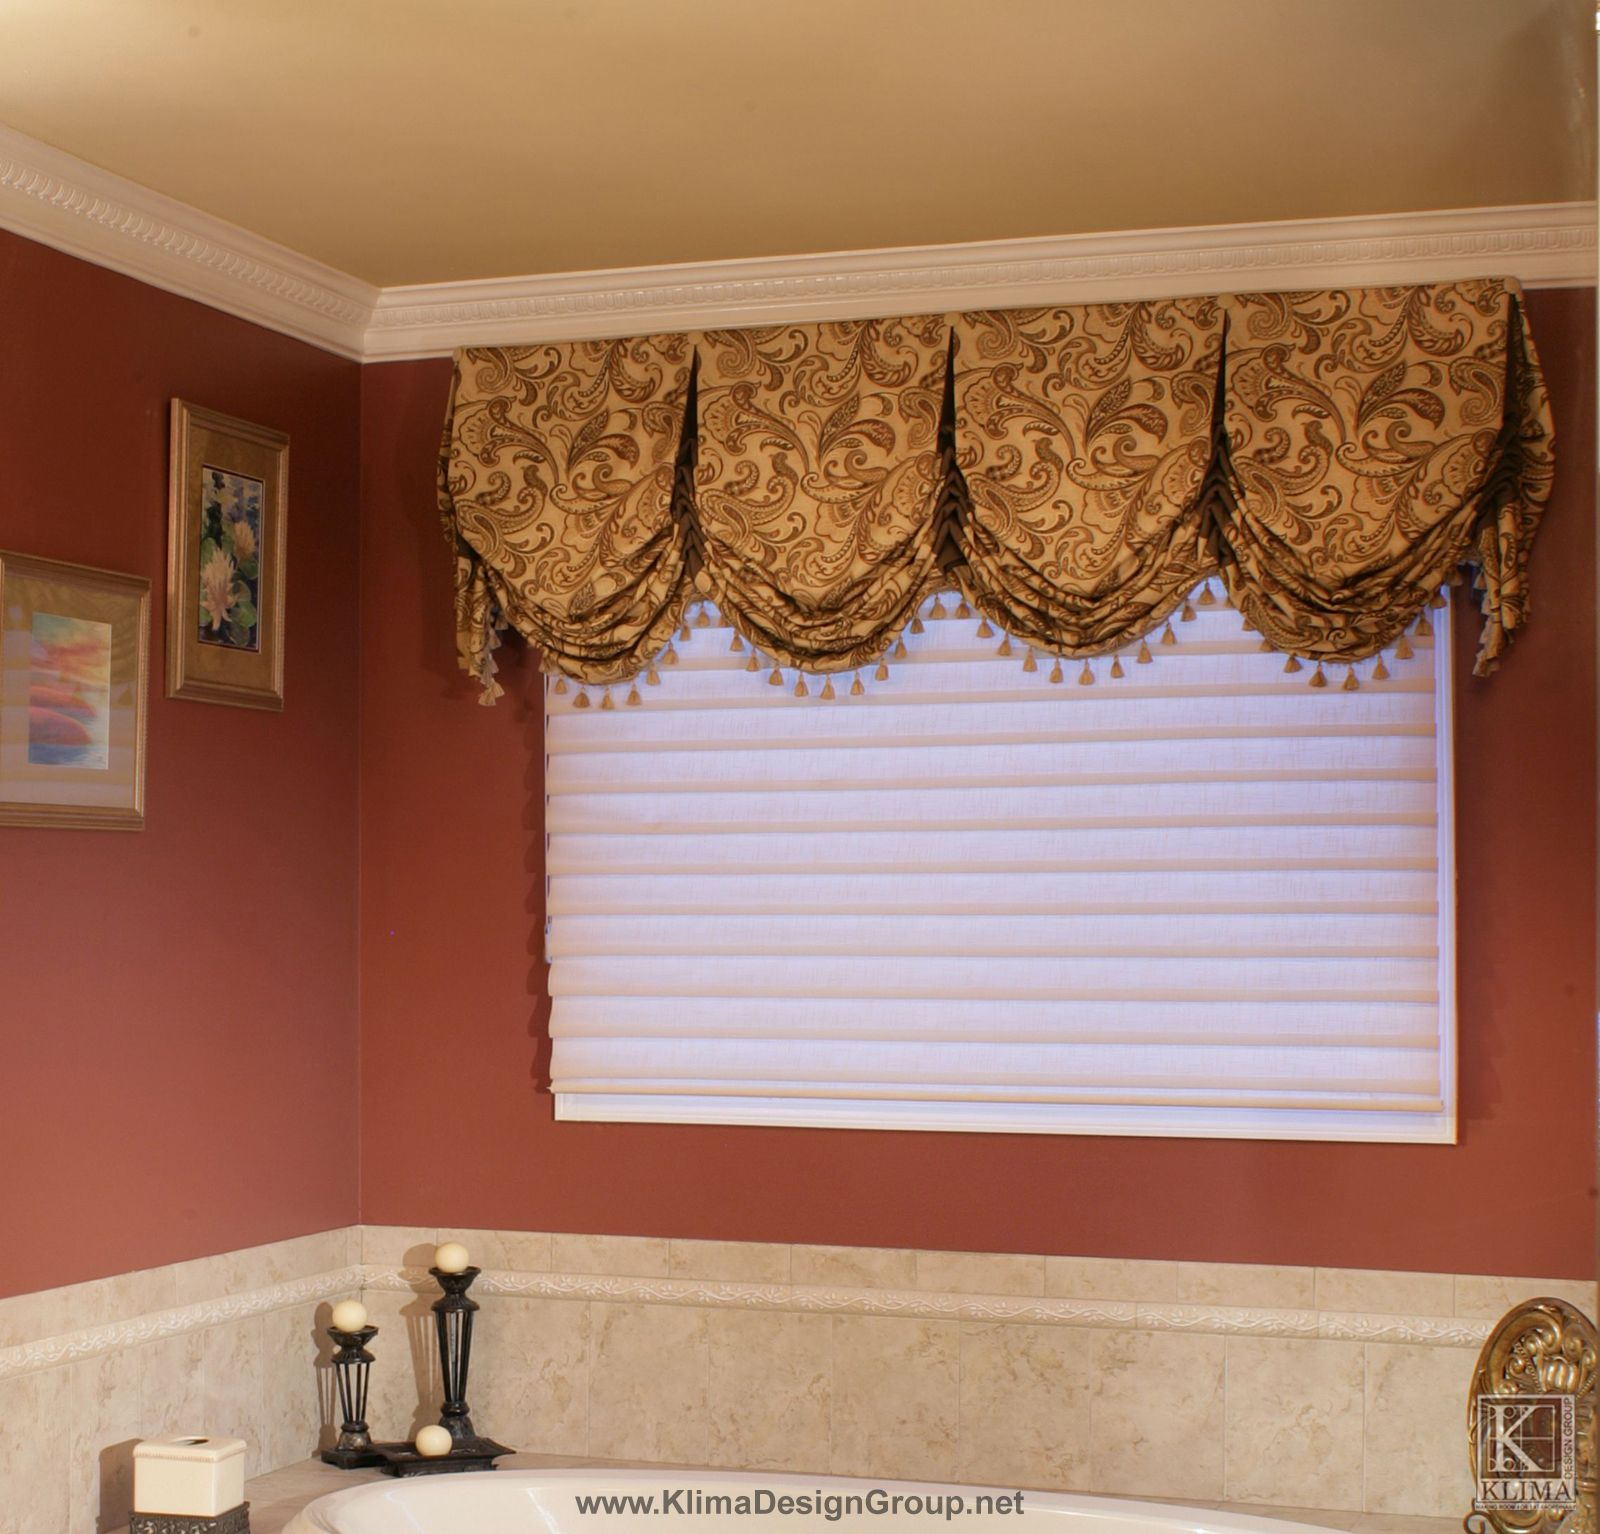 custom bathroom valance with contrast  trim and buttons. custom bathroom valance with contrast  trim and buttons   Valance